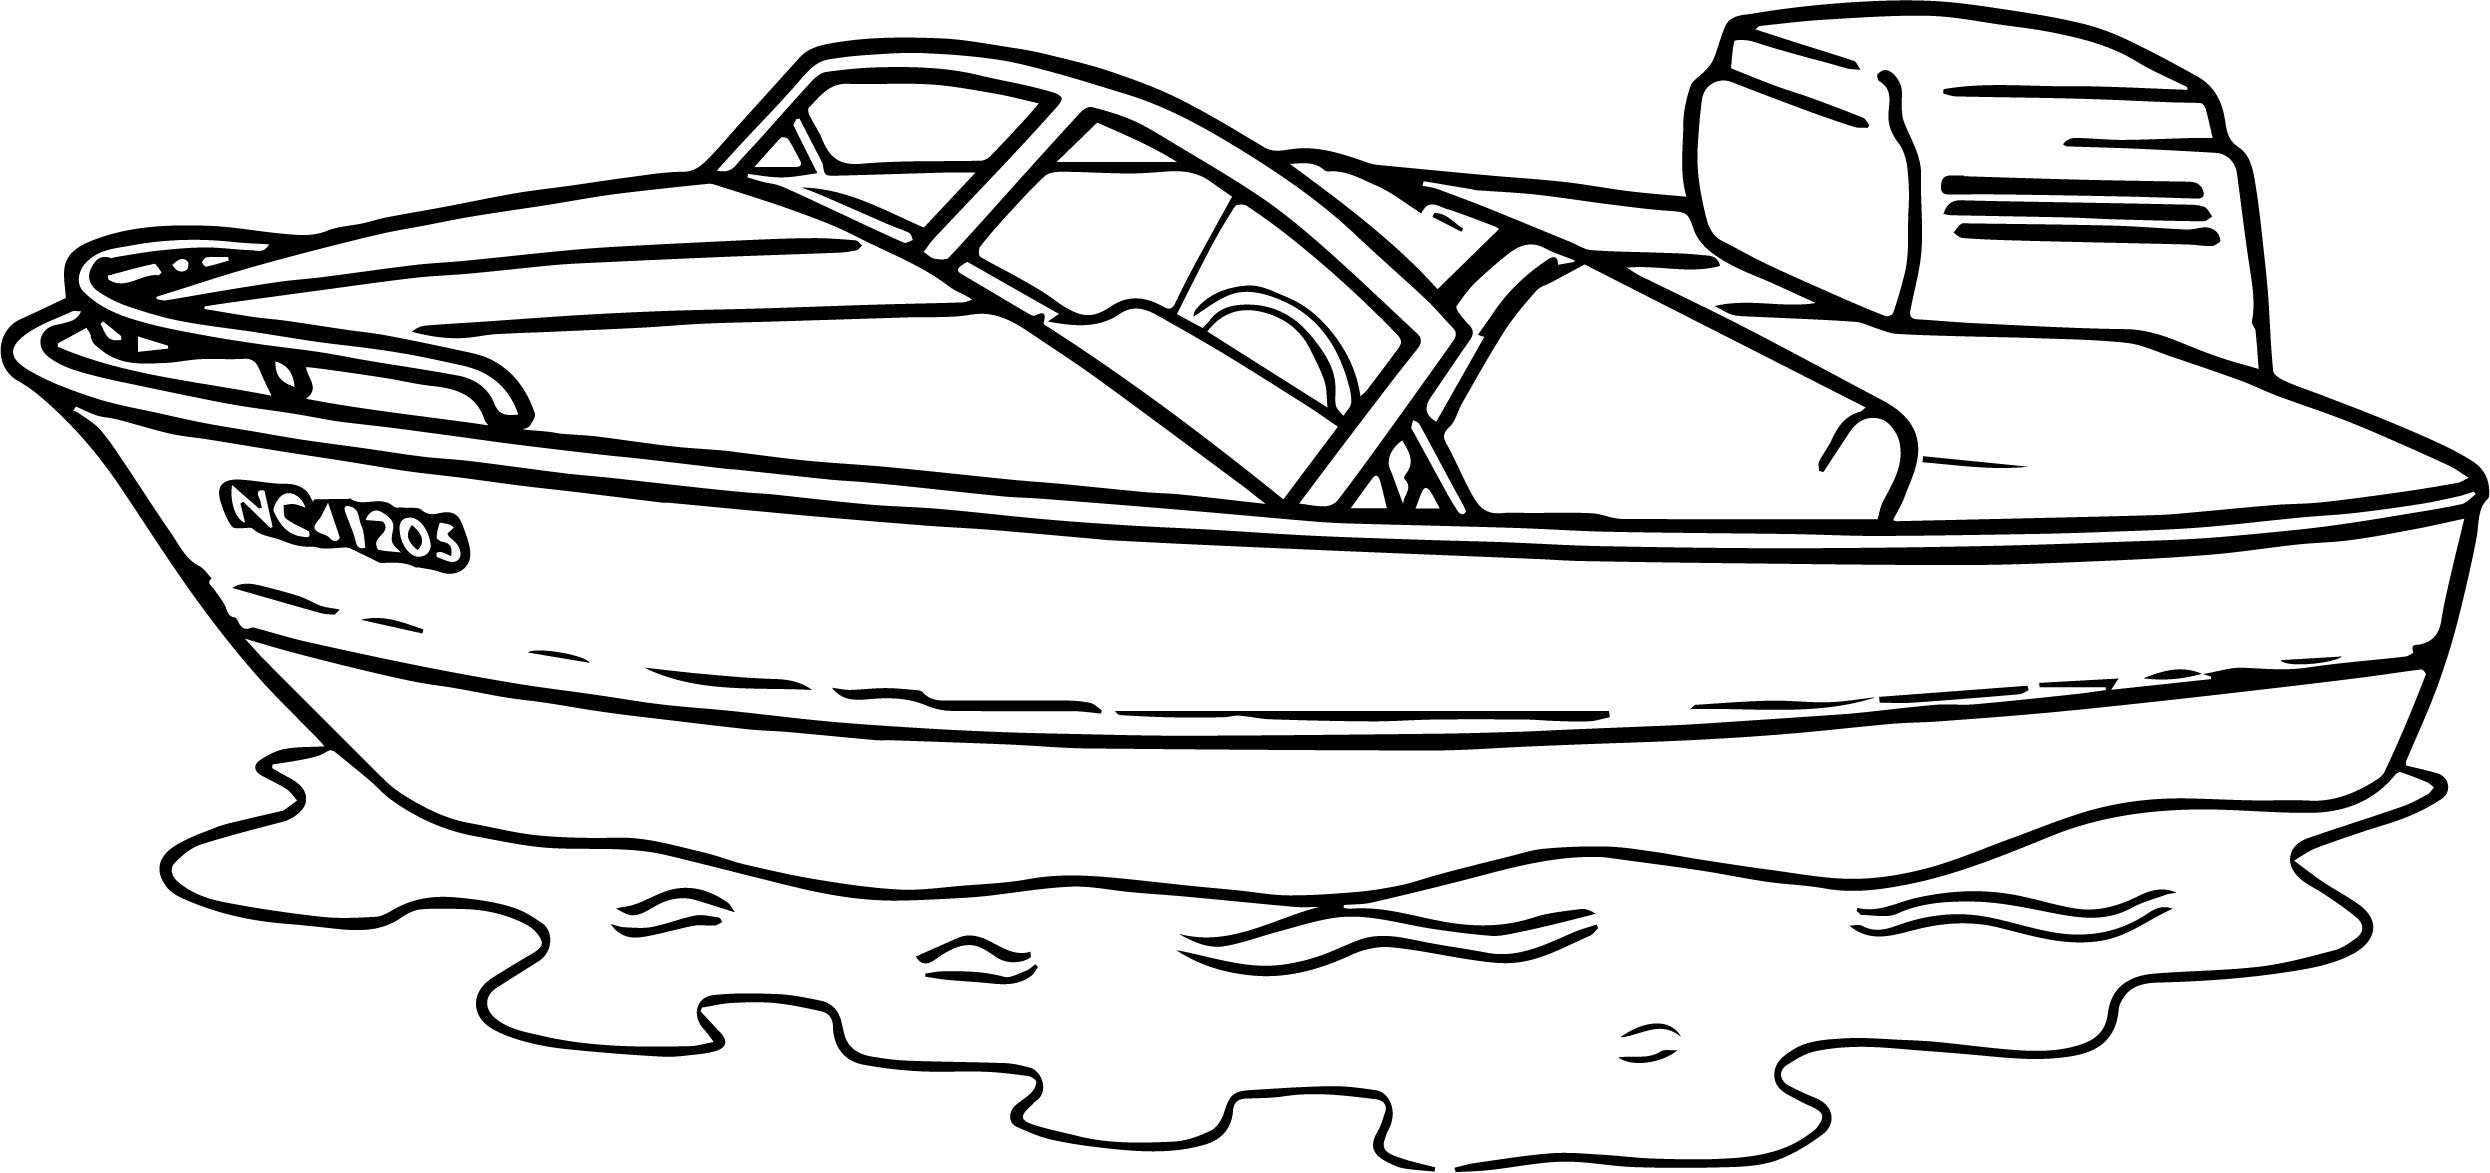 Any Motorboat Aquatic Coloring Page